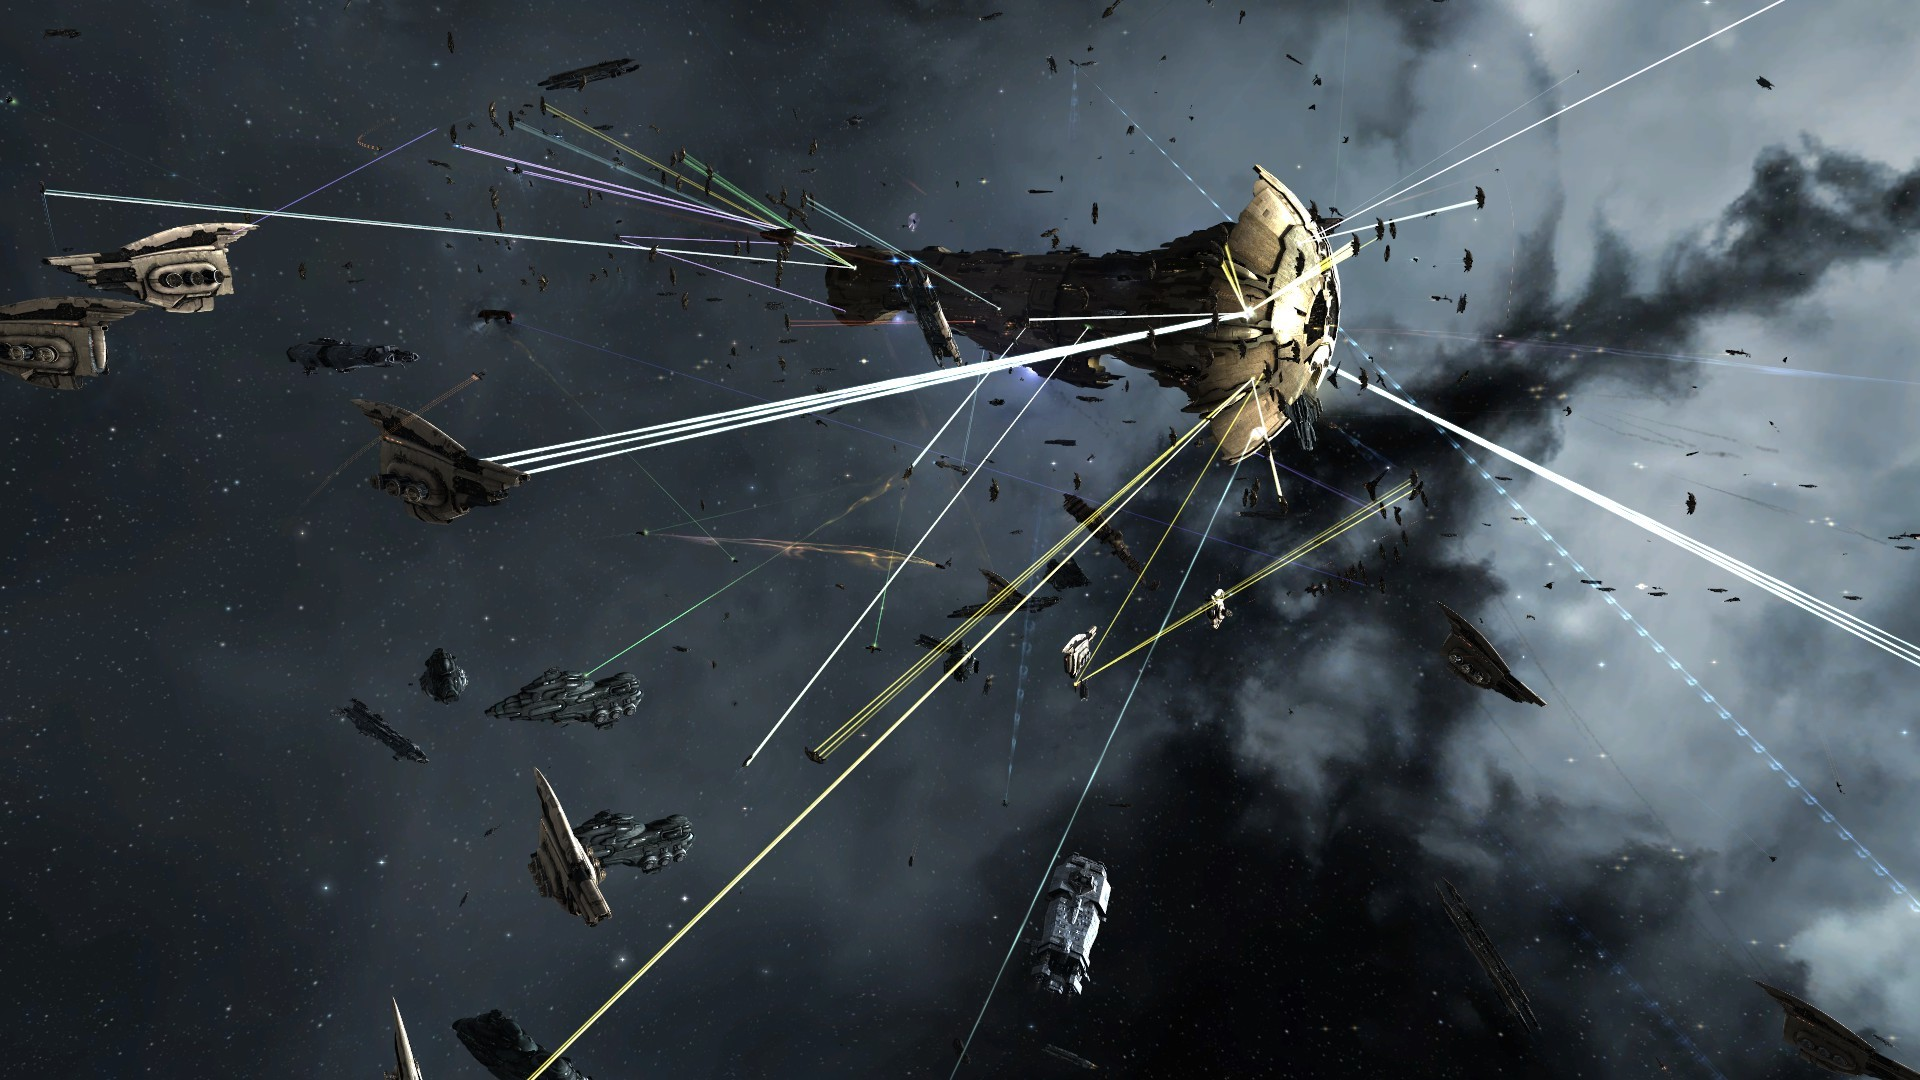 EVE Online: A compilation of the background/news/videos/screenshots from the